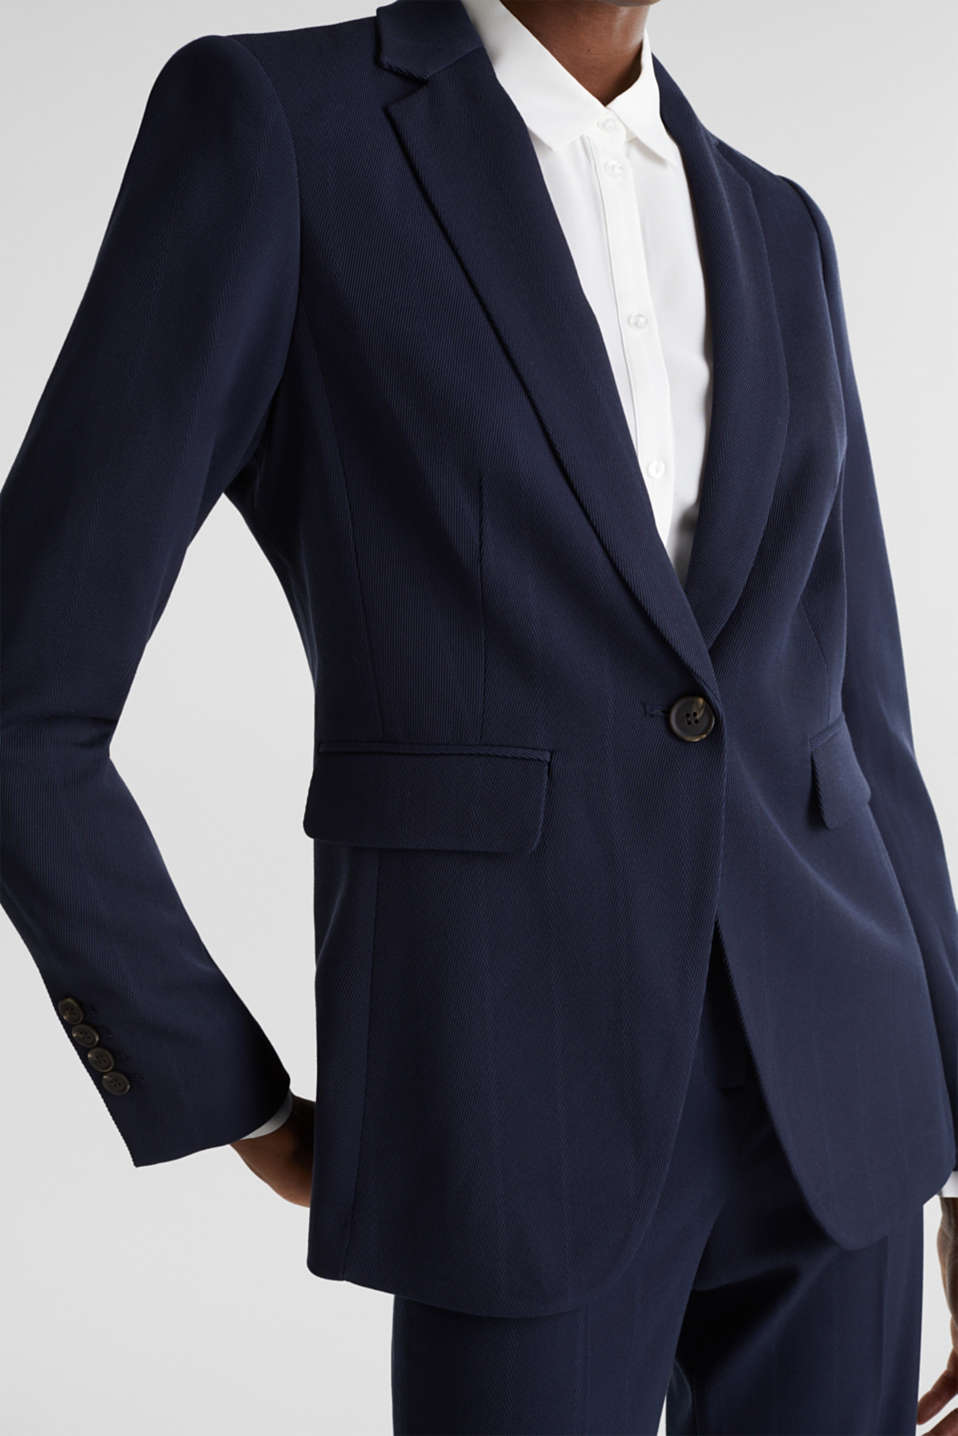 STRUCTURE STRIPES textured blazer, NAVY, detail image number 2